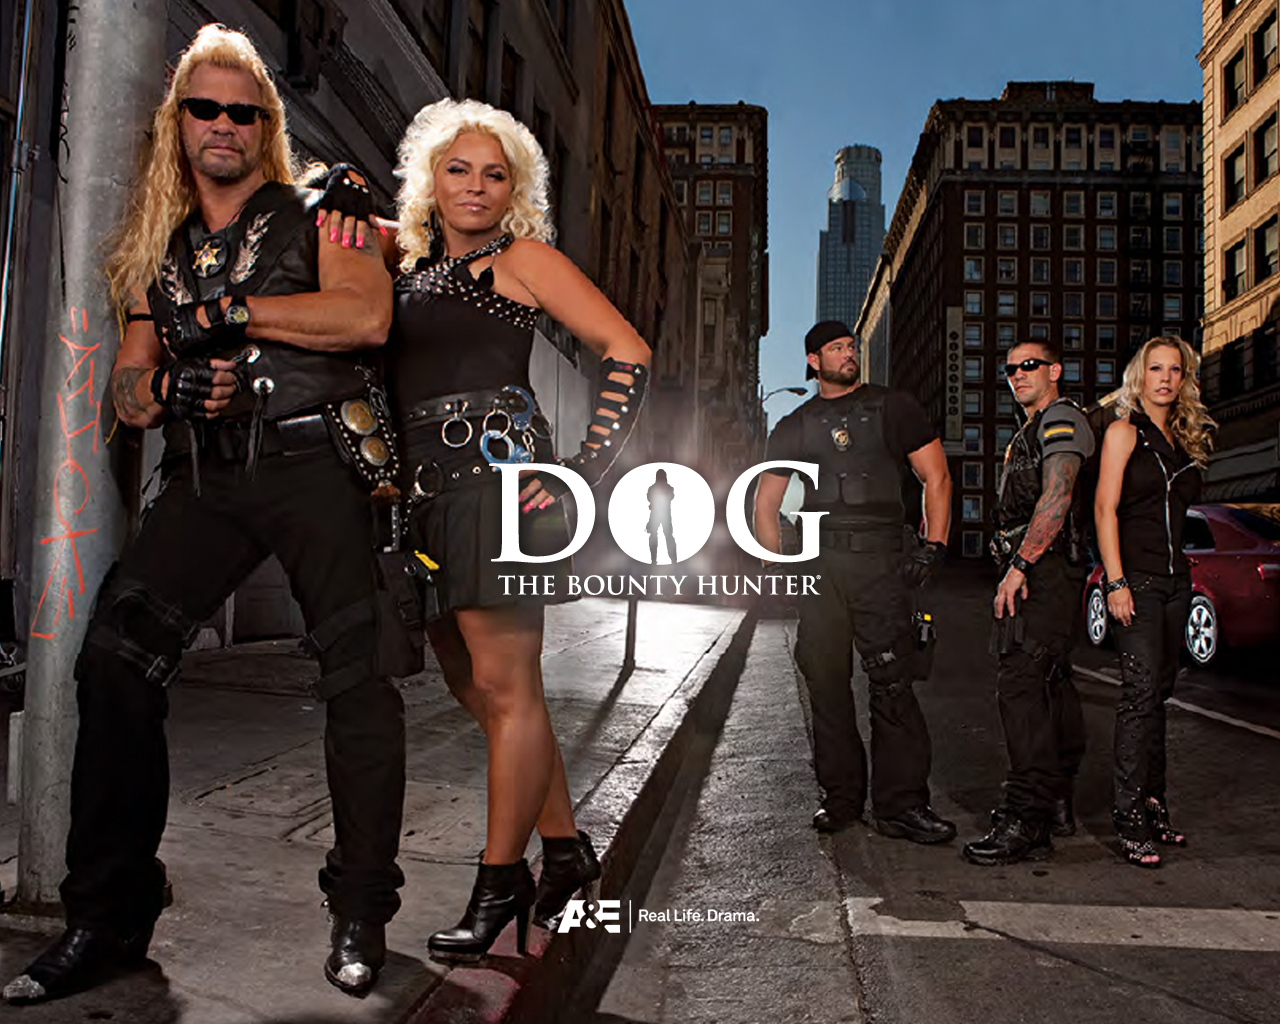 Www dog the bounty hunter episodes com